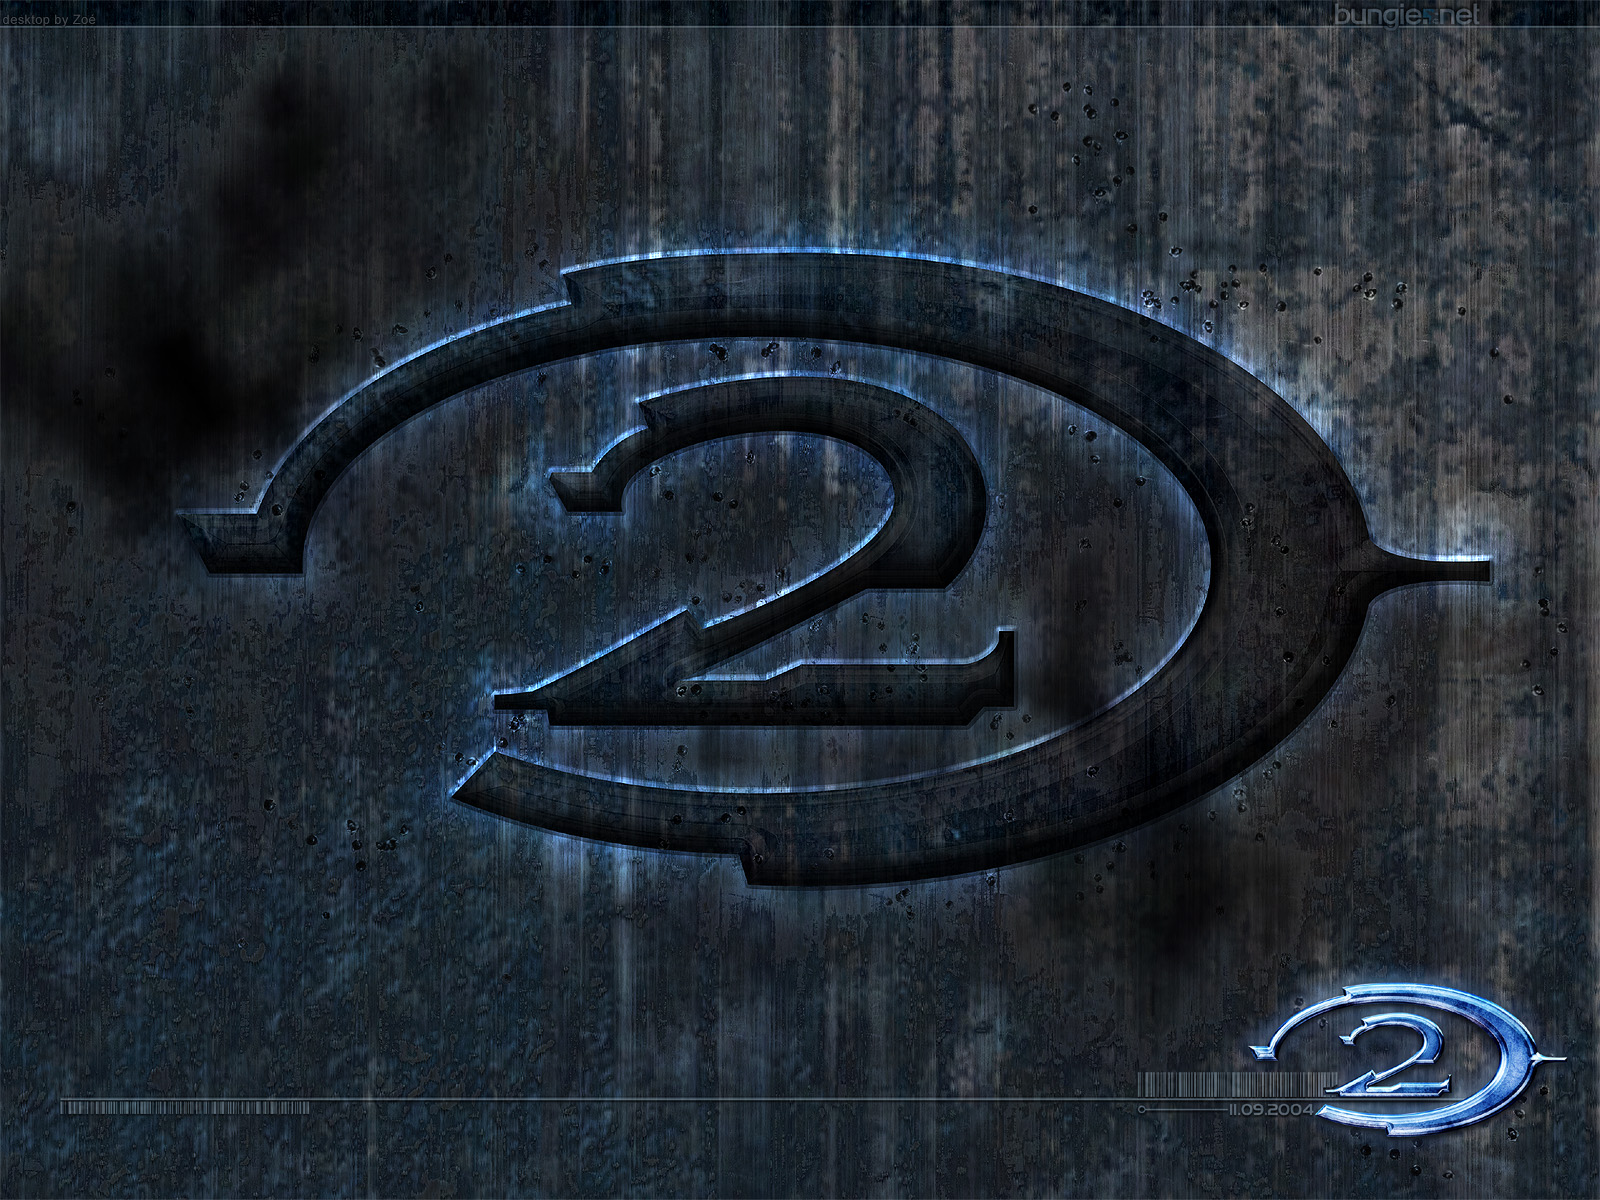 Halo 2 2004 Promotional Art Mobygames